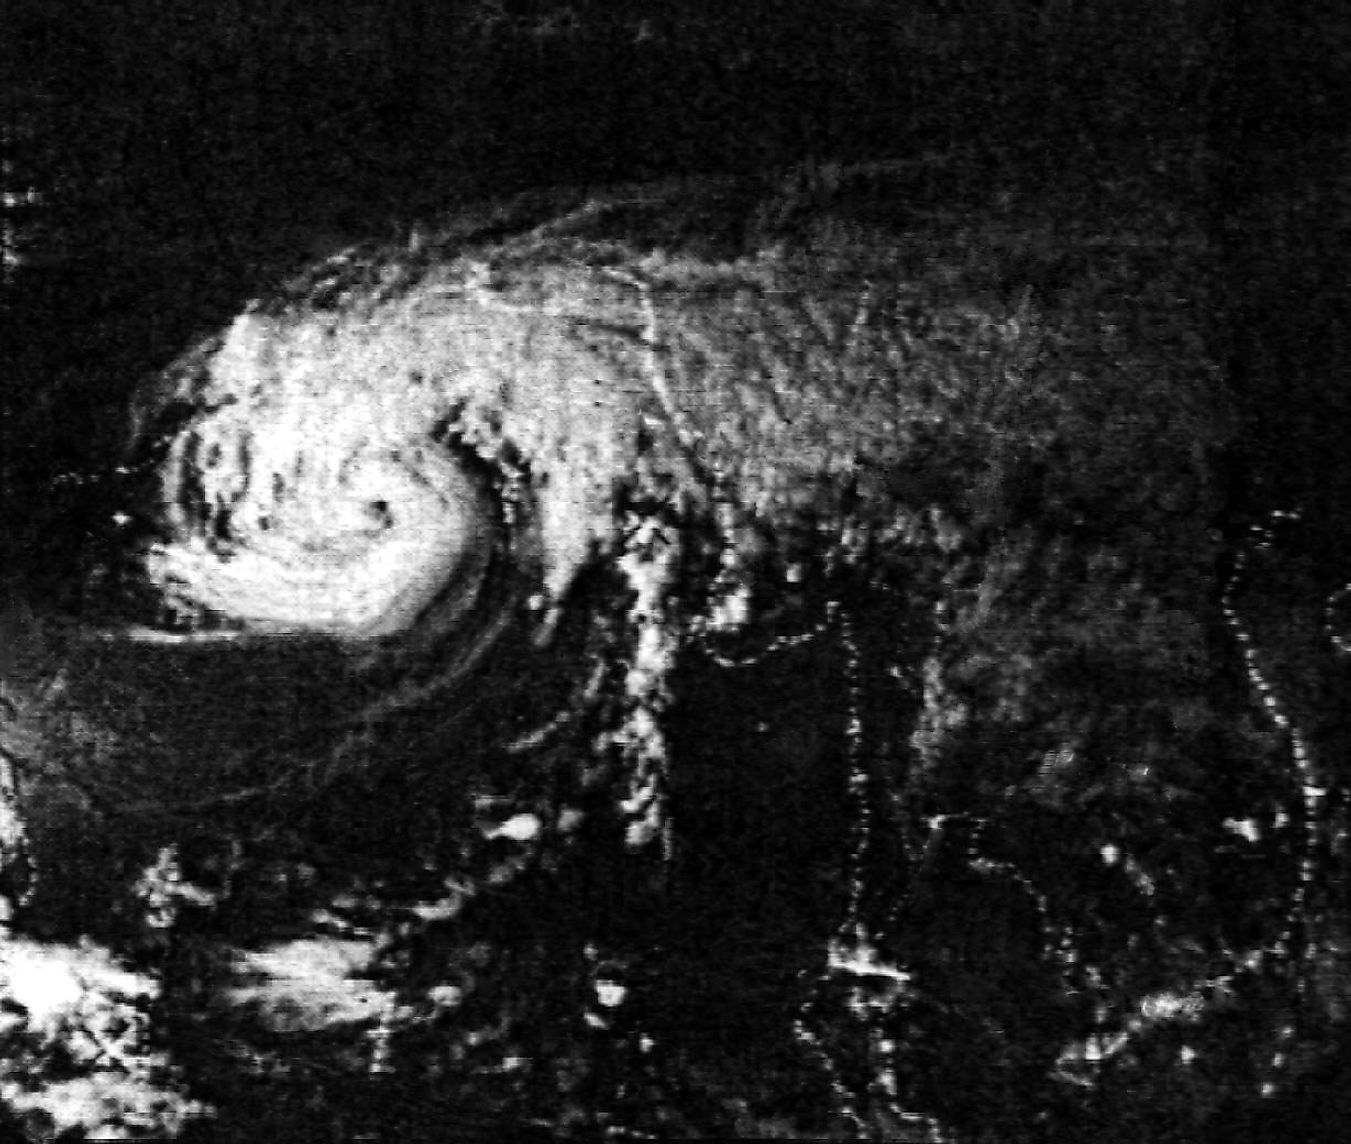 Image of the Bhola cyclone taken on November 11, 1970.